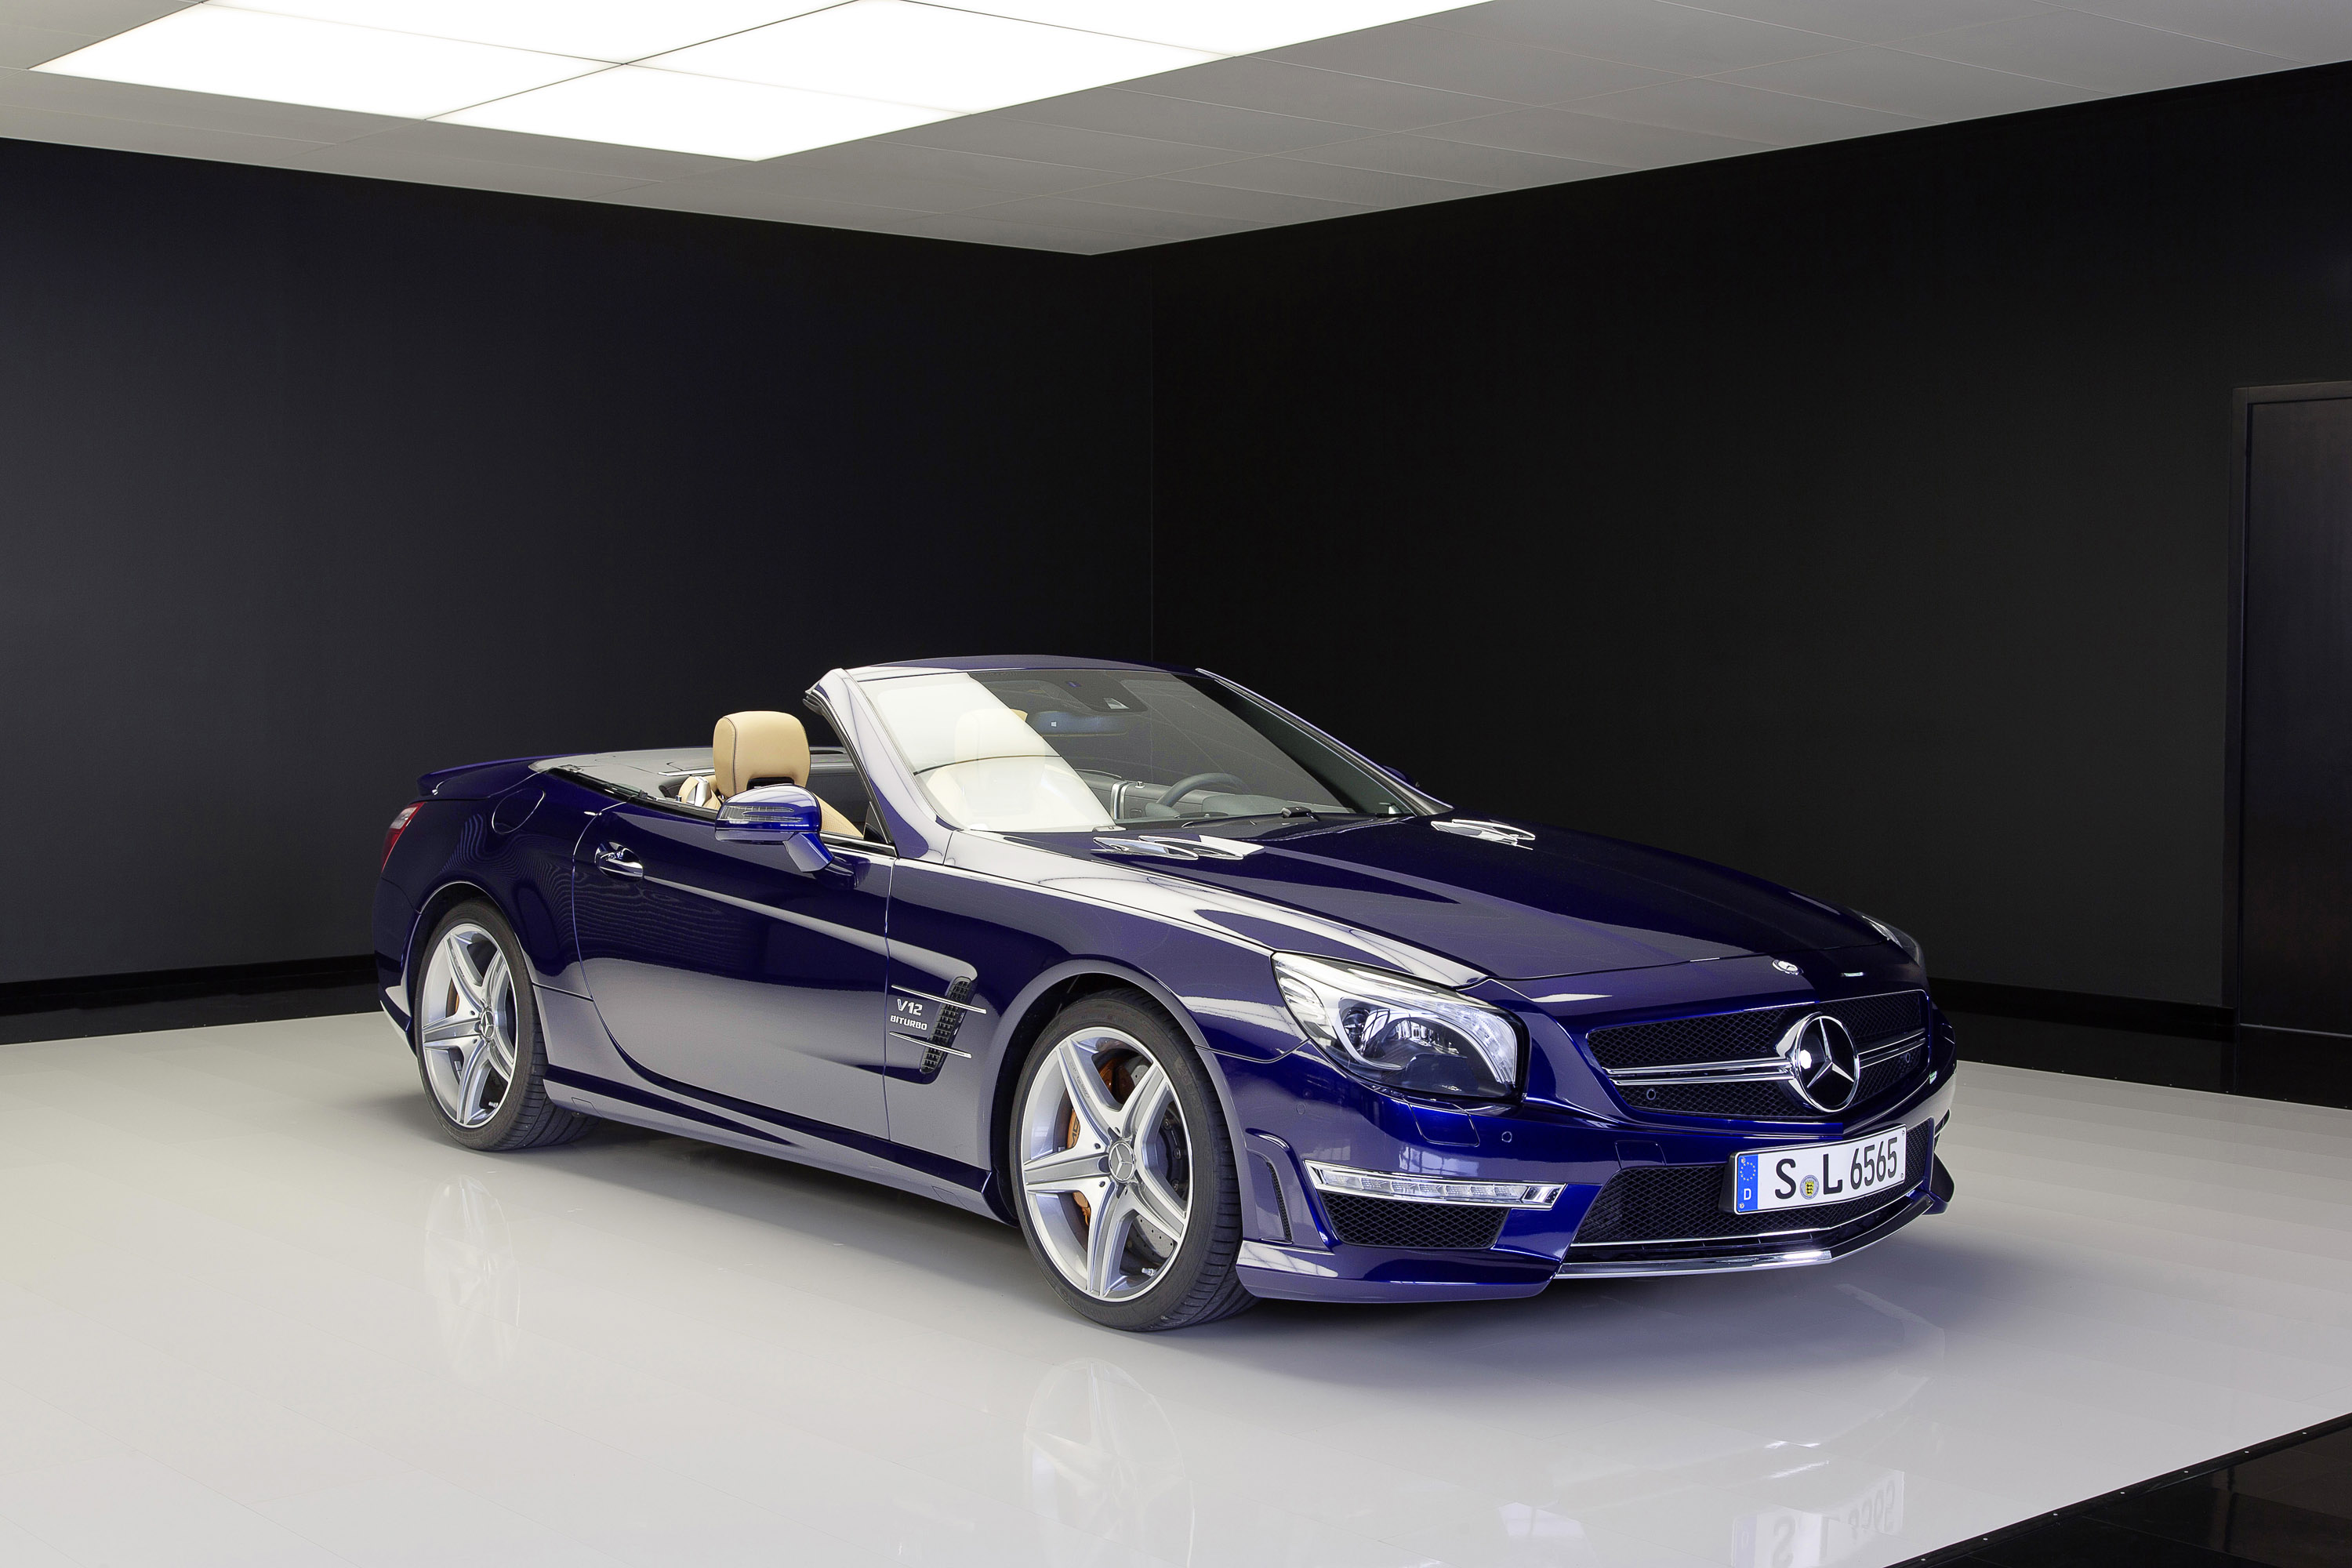 2013 mercedes benz sl 65 amg price 236 334 for Mercedes benz sl price